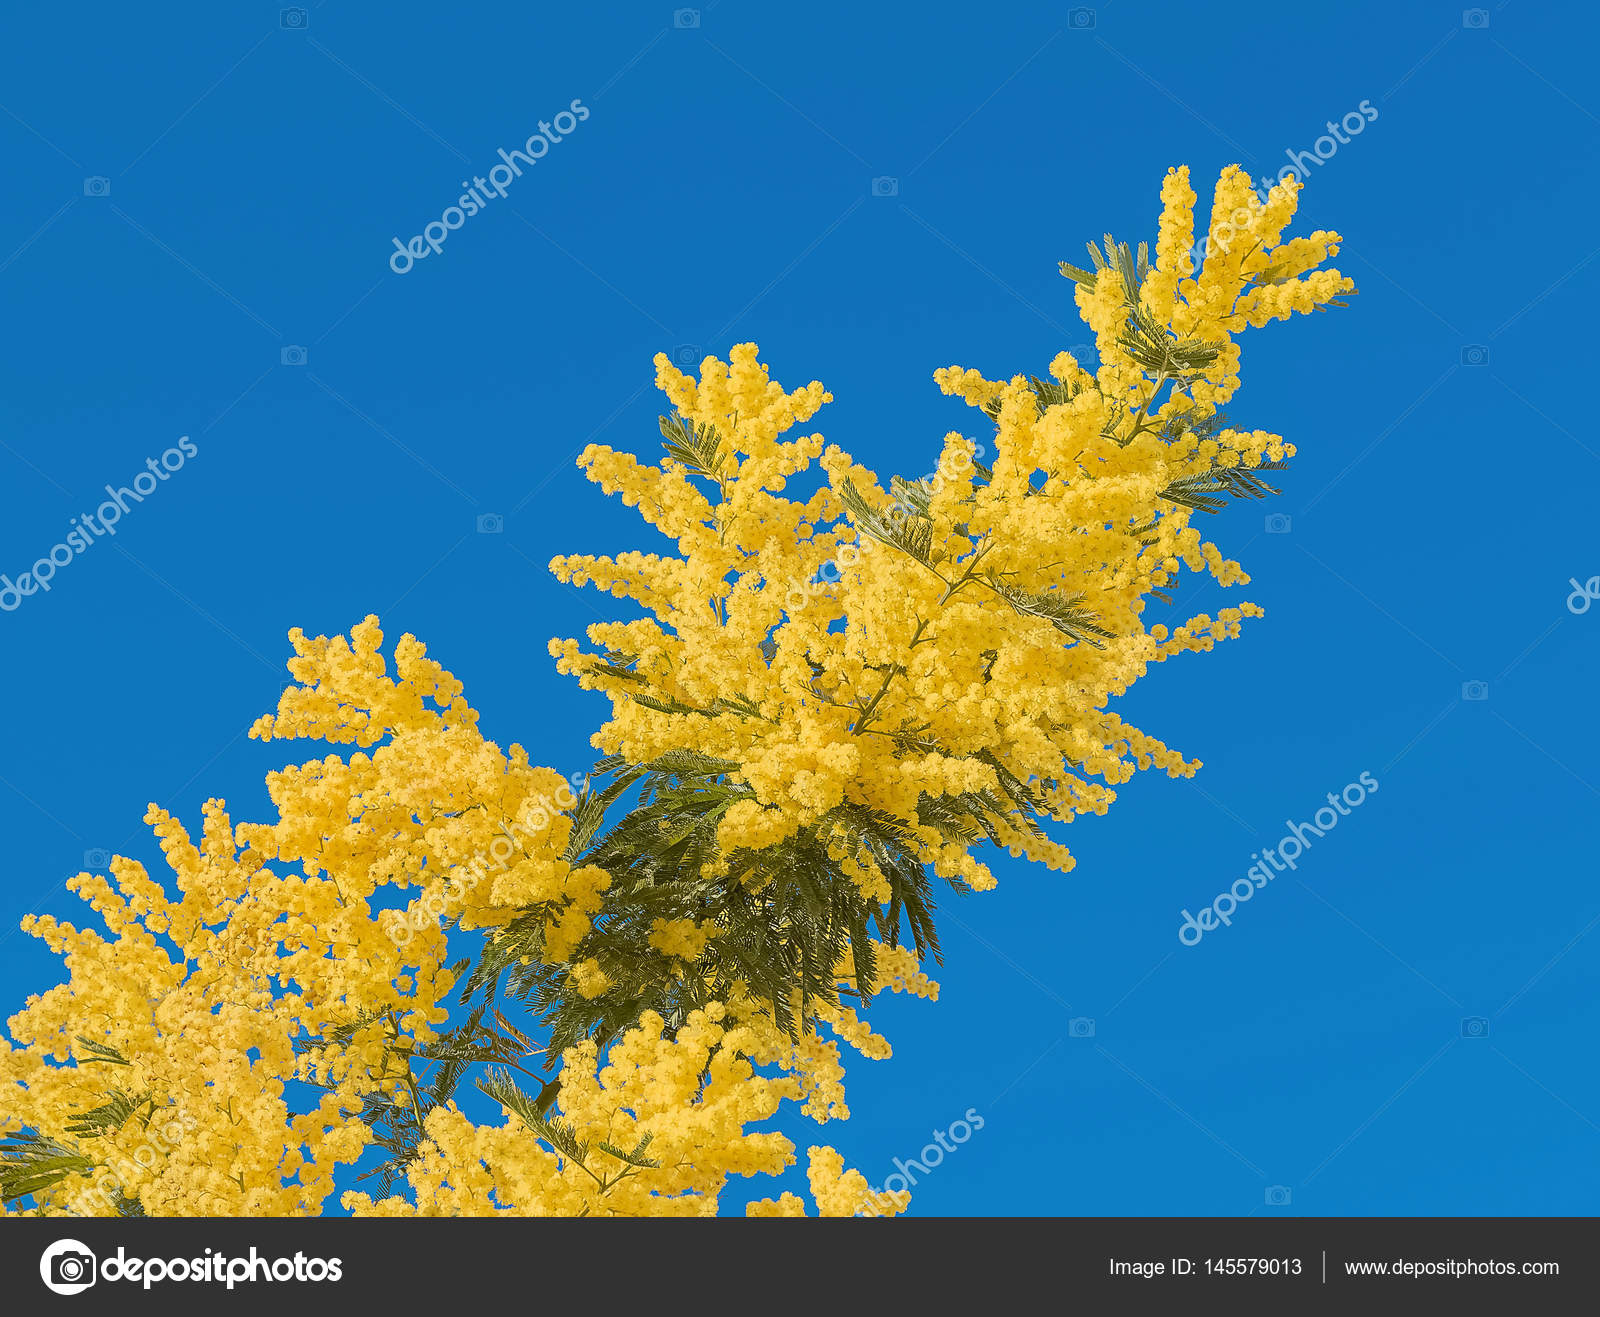 Yellow mimosa flower with leaf on tree on blue sky symbol women day yellow mimosa flower with leaf on tree on blue sky symbol women day stock mightylinksfo